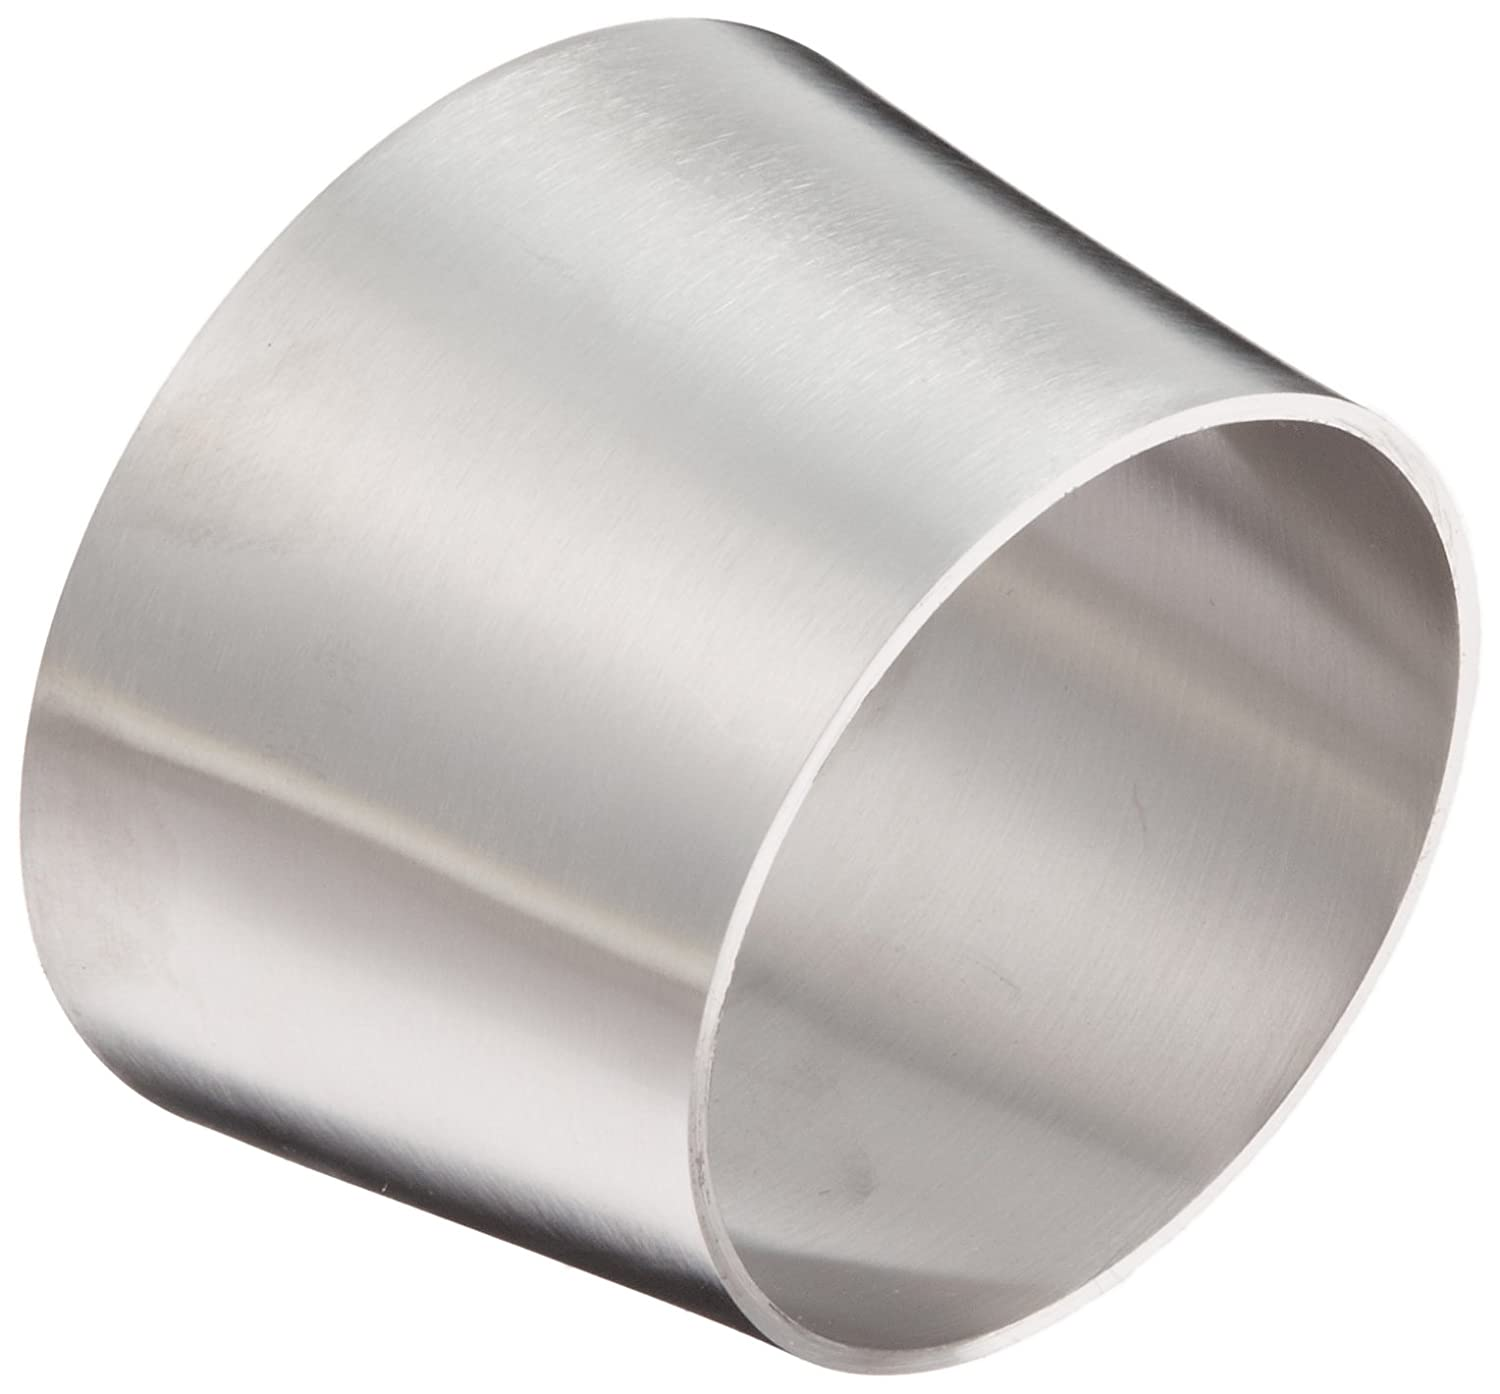 DixonB32W-G300200P Stainless Steel 304 Polished Fitting 3 Tube OD x 2 Tube OD 3 Tube OD x 2 Tube OD Dixon Valve /& Coupling Weld Eccentric Reducer